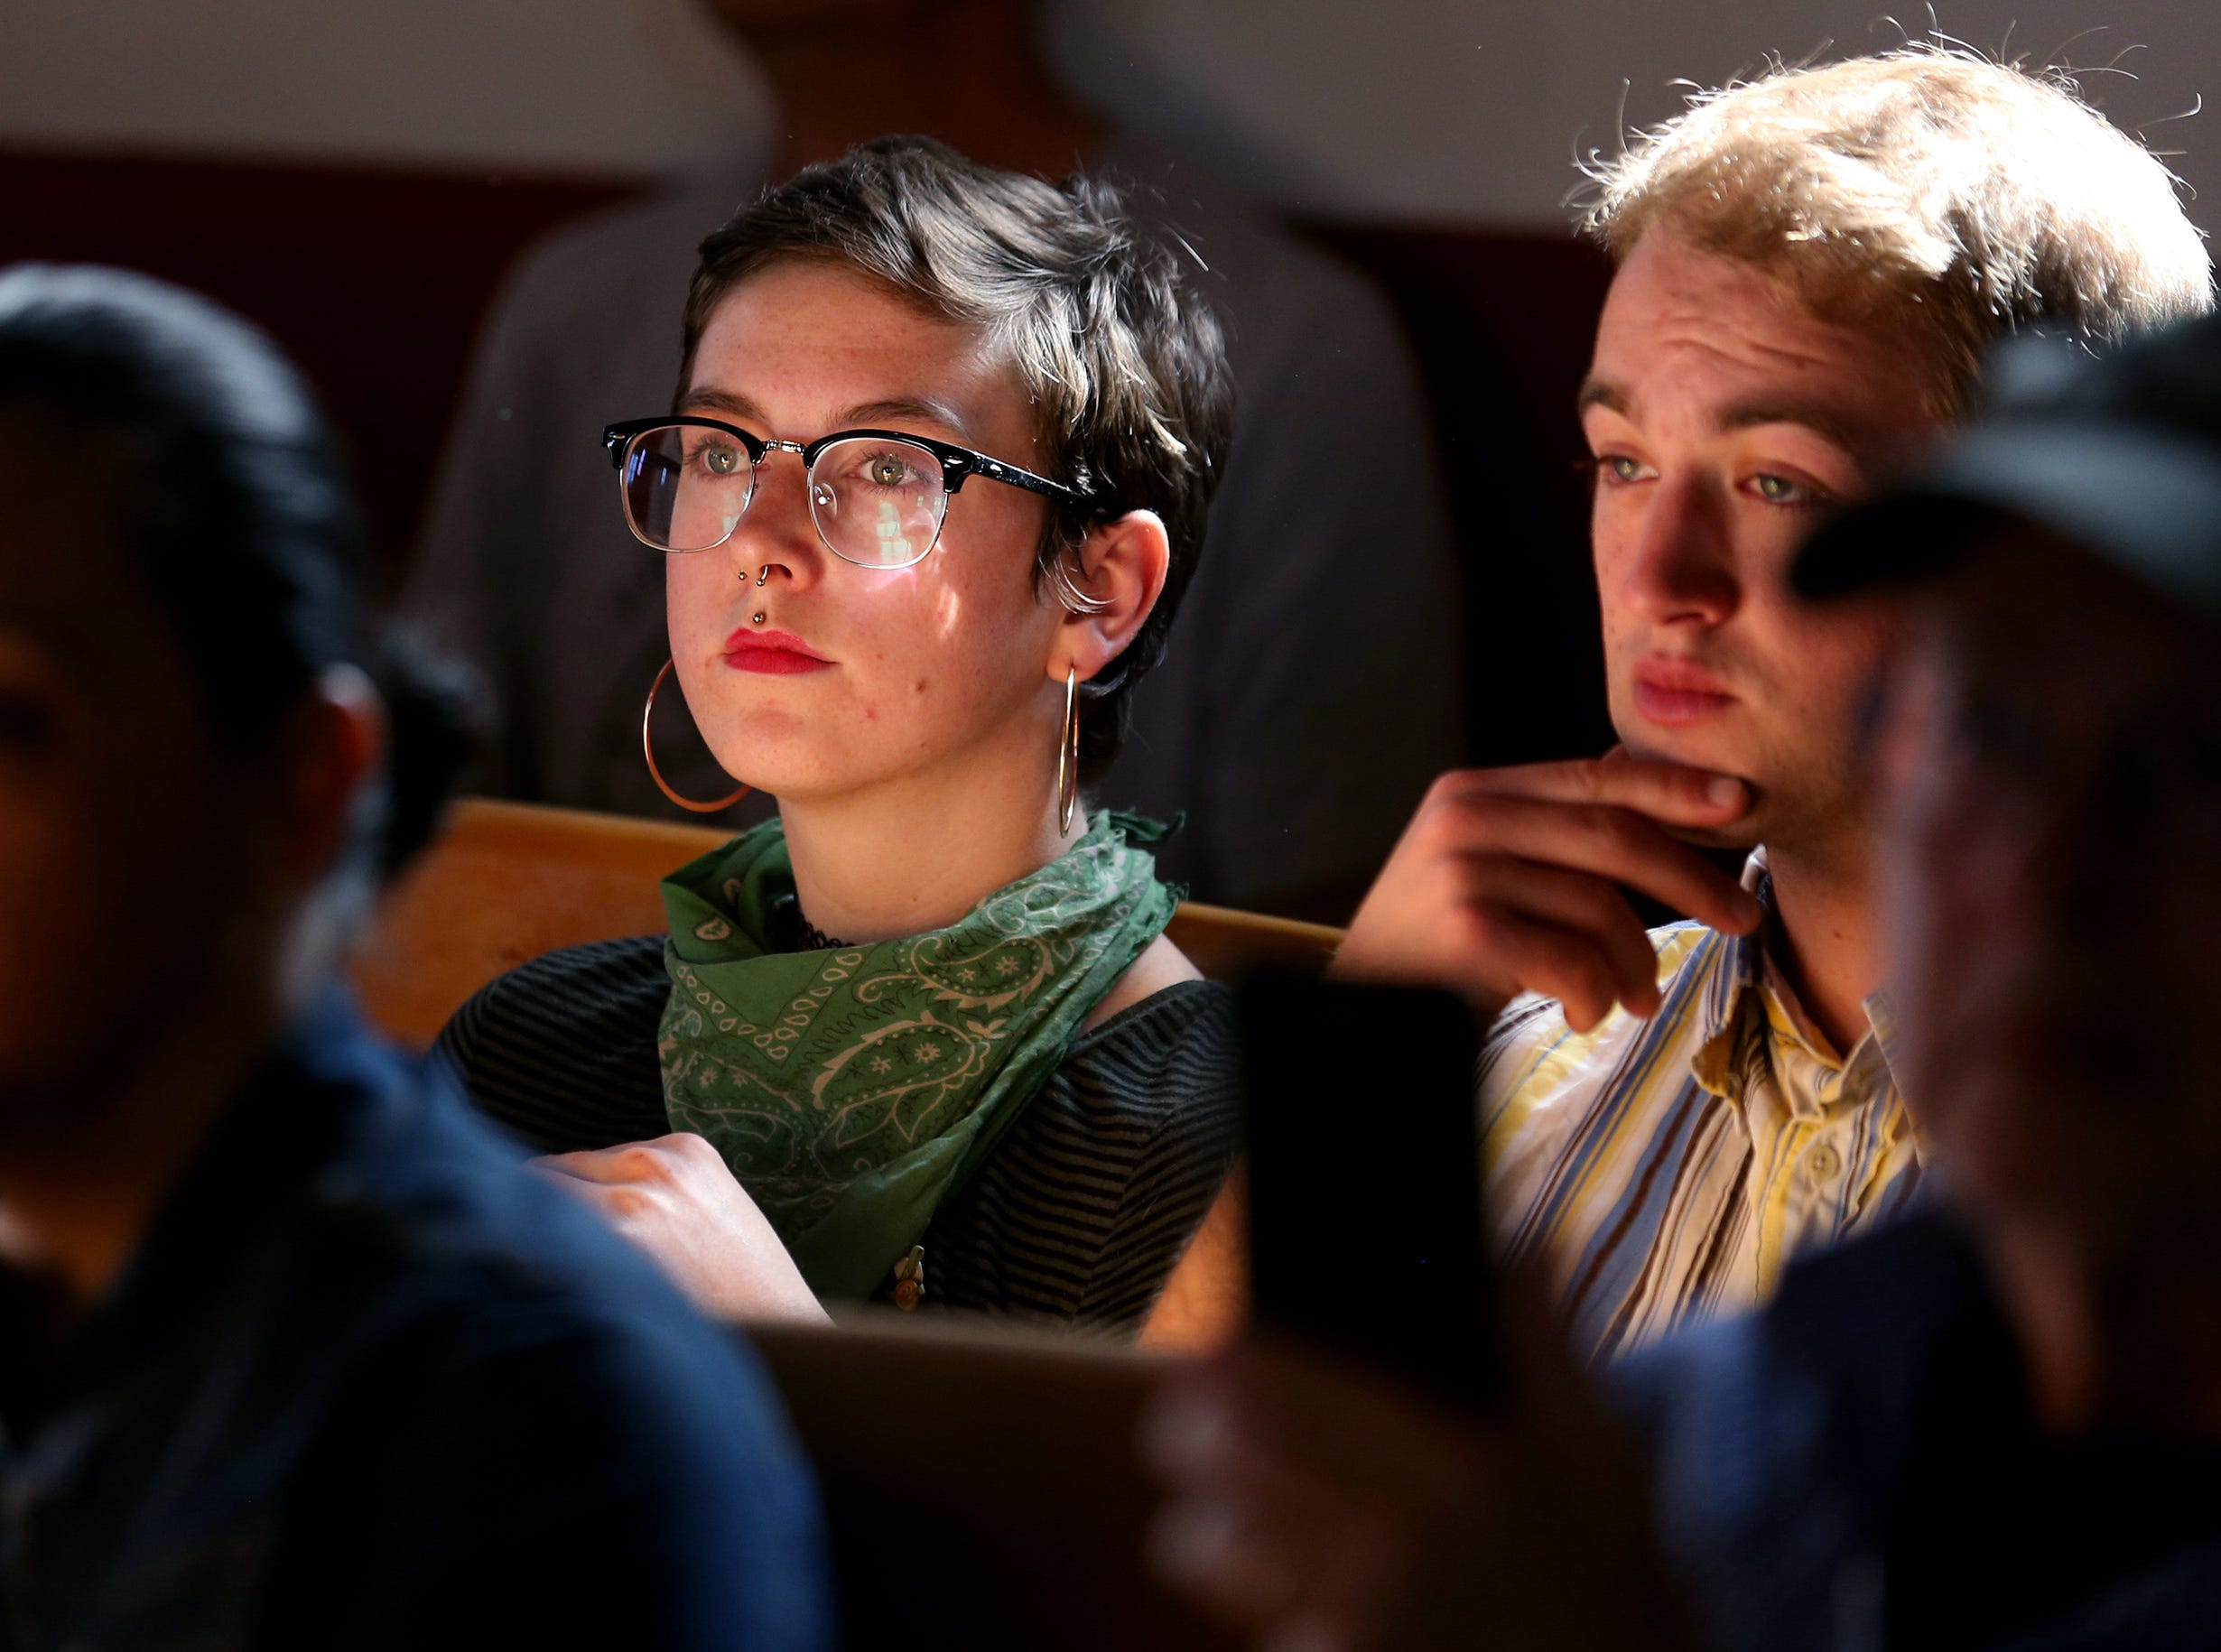 A woman in the crowd looks on during a press conference on March 20, 2019, at Southside Presbyterian Church, 317 W. 23rd St., in Tucson. A family of three was arrested after a traffic stop by a state trooper where Border Patrol was called to assist.